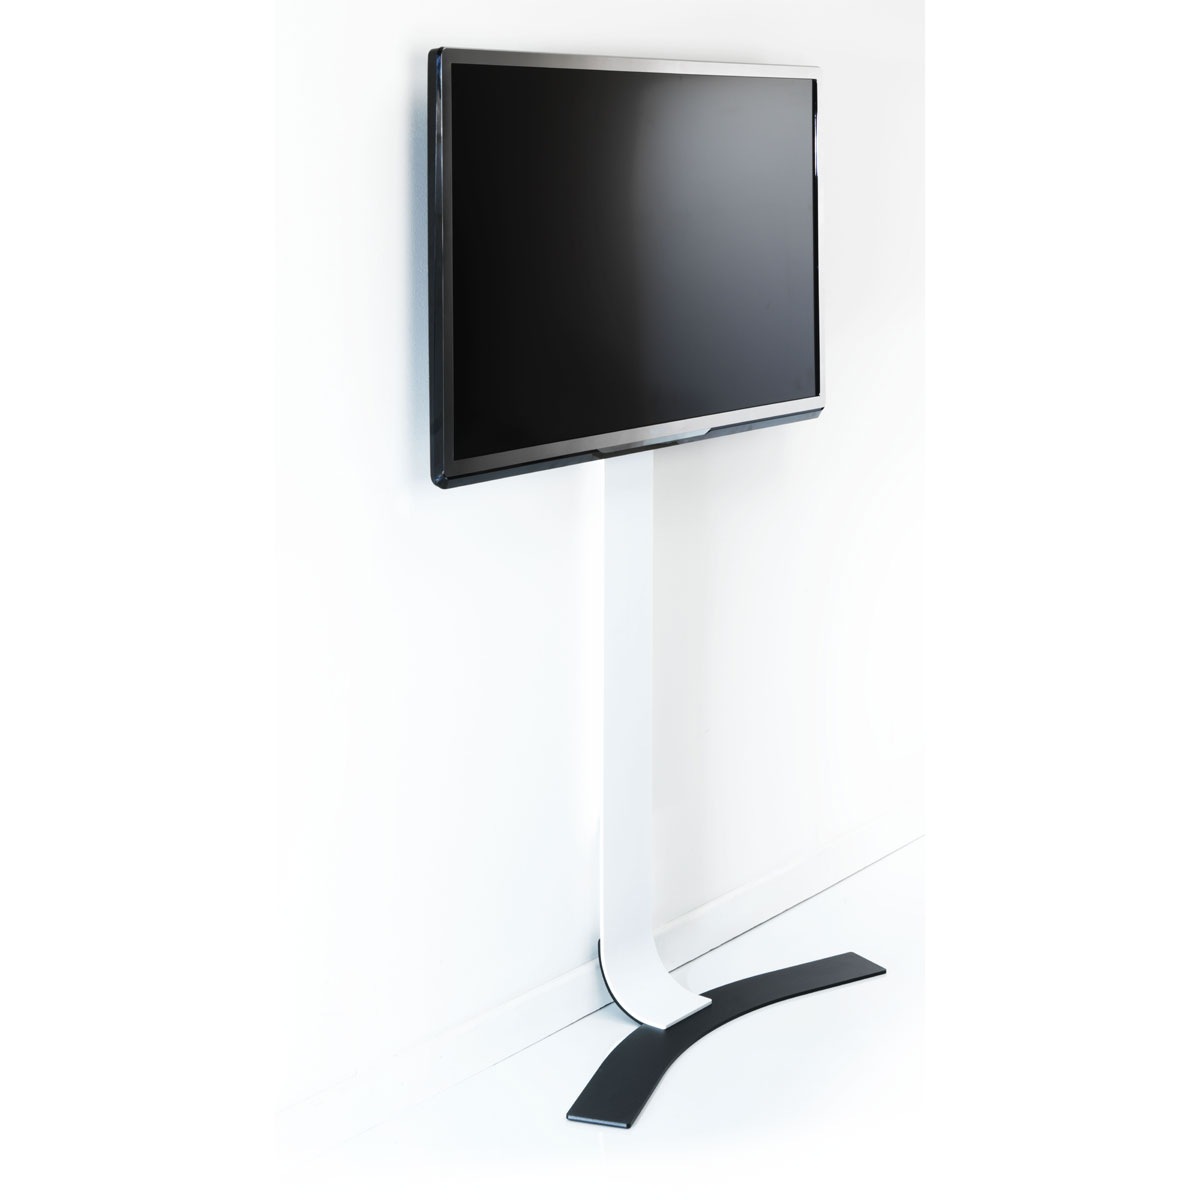 Erard standit 600 support mural tv erard group sur for Tv ecran plat miroir